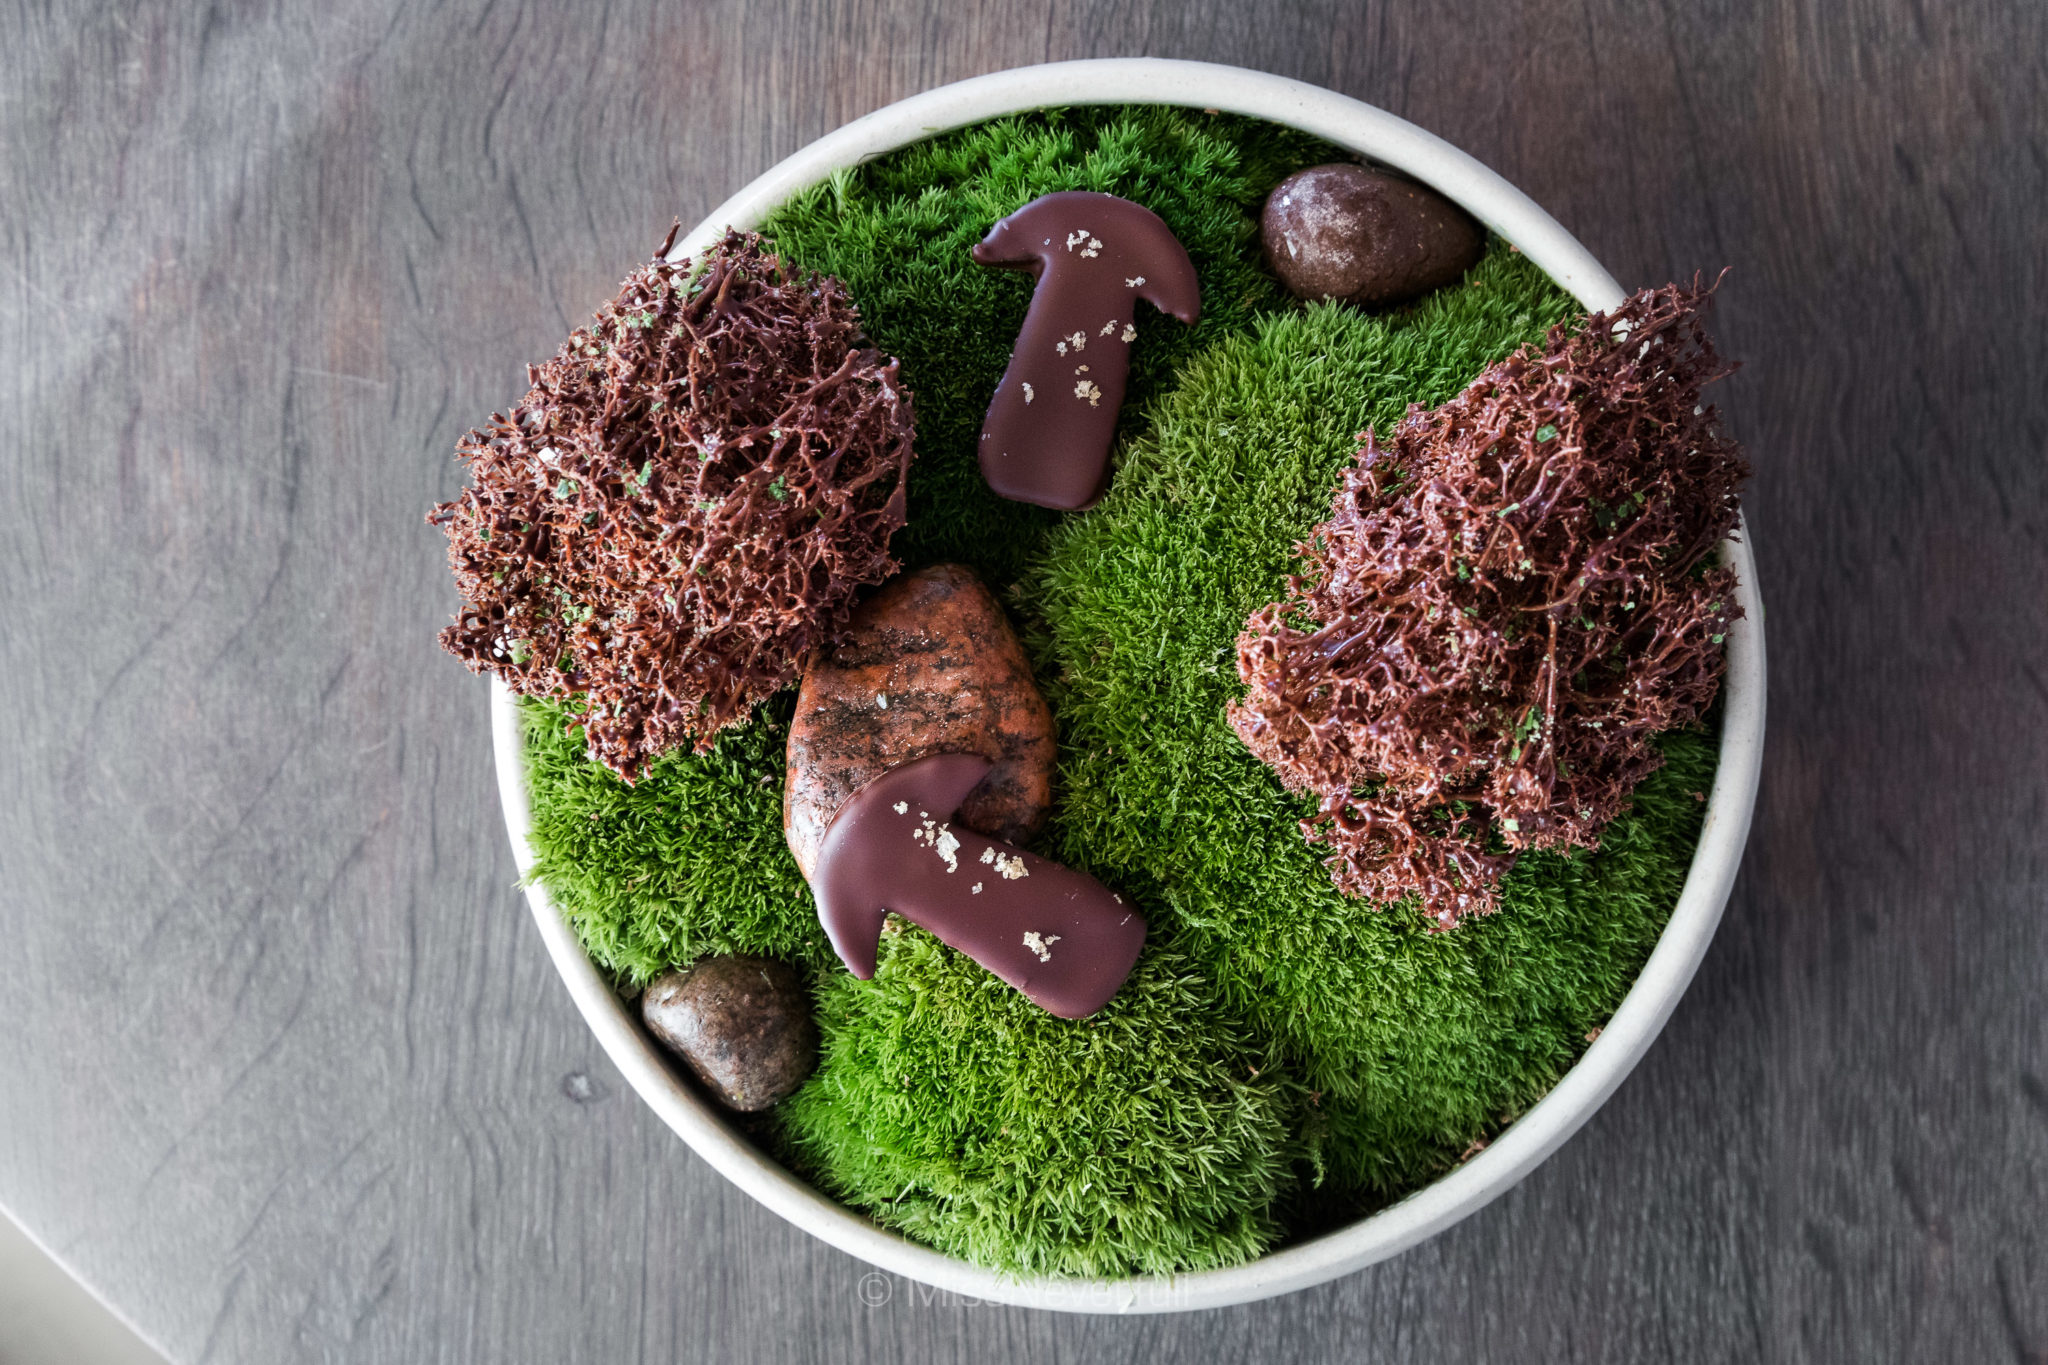 15.2 Moss cooked in chocolate, cep mushroom